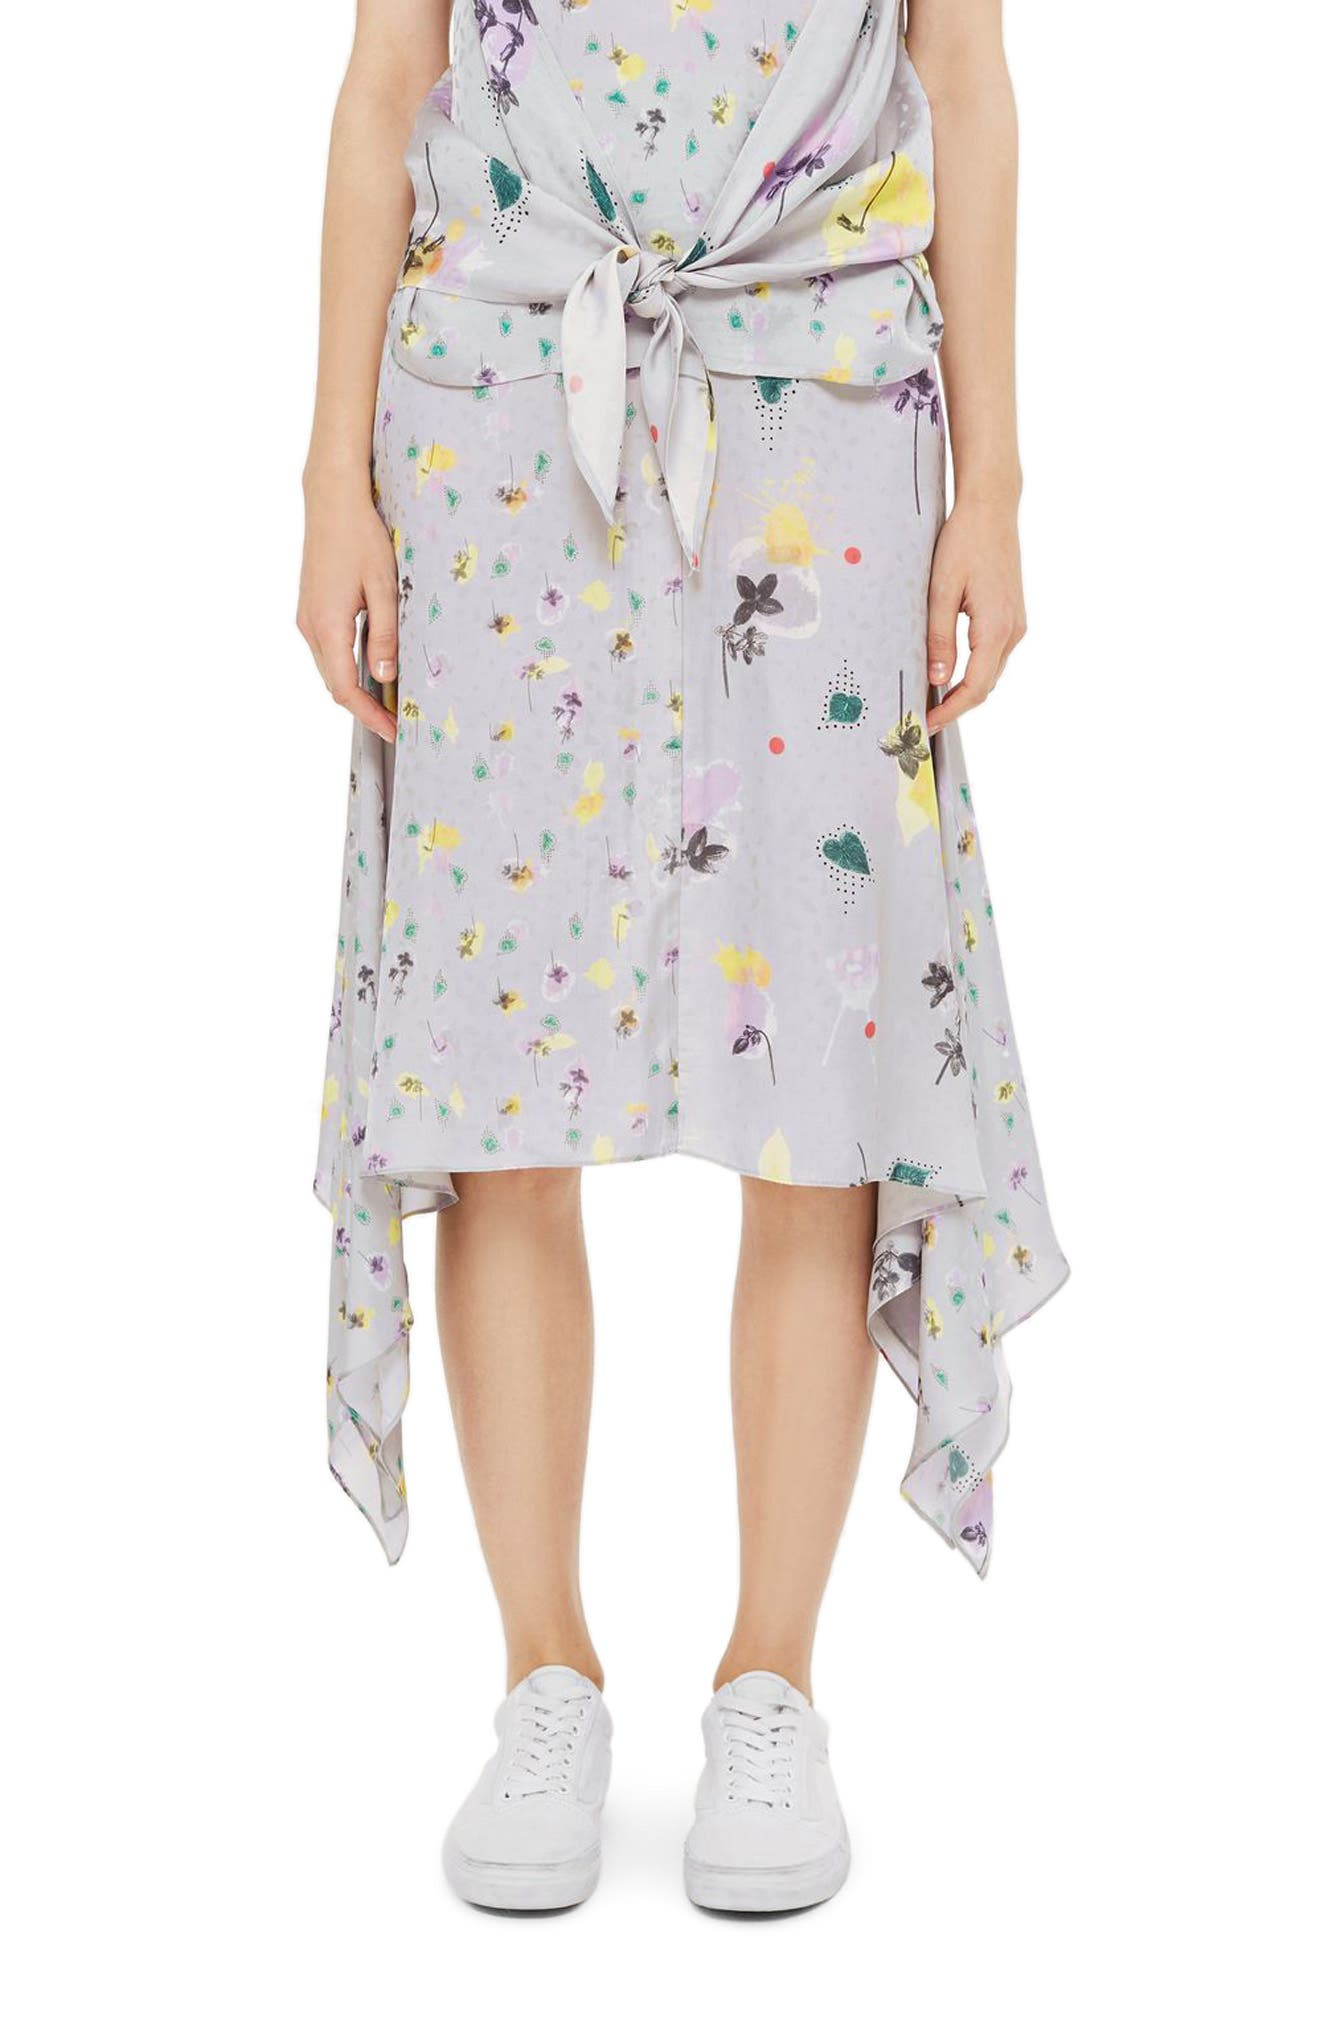 Topshop Boutique Mix Floral Skirt